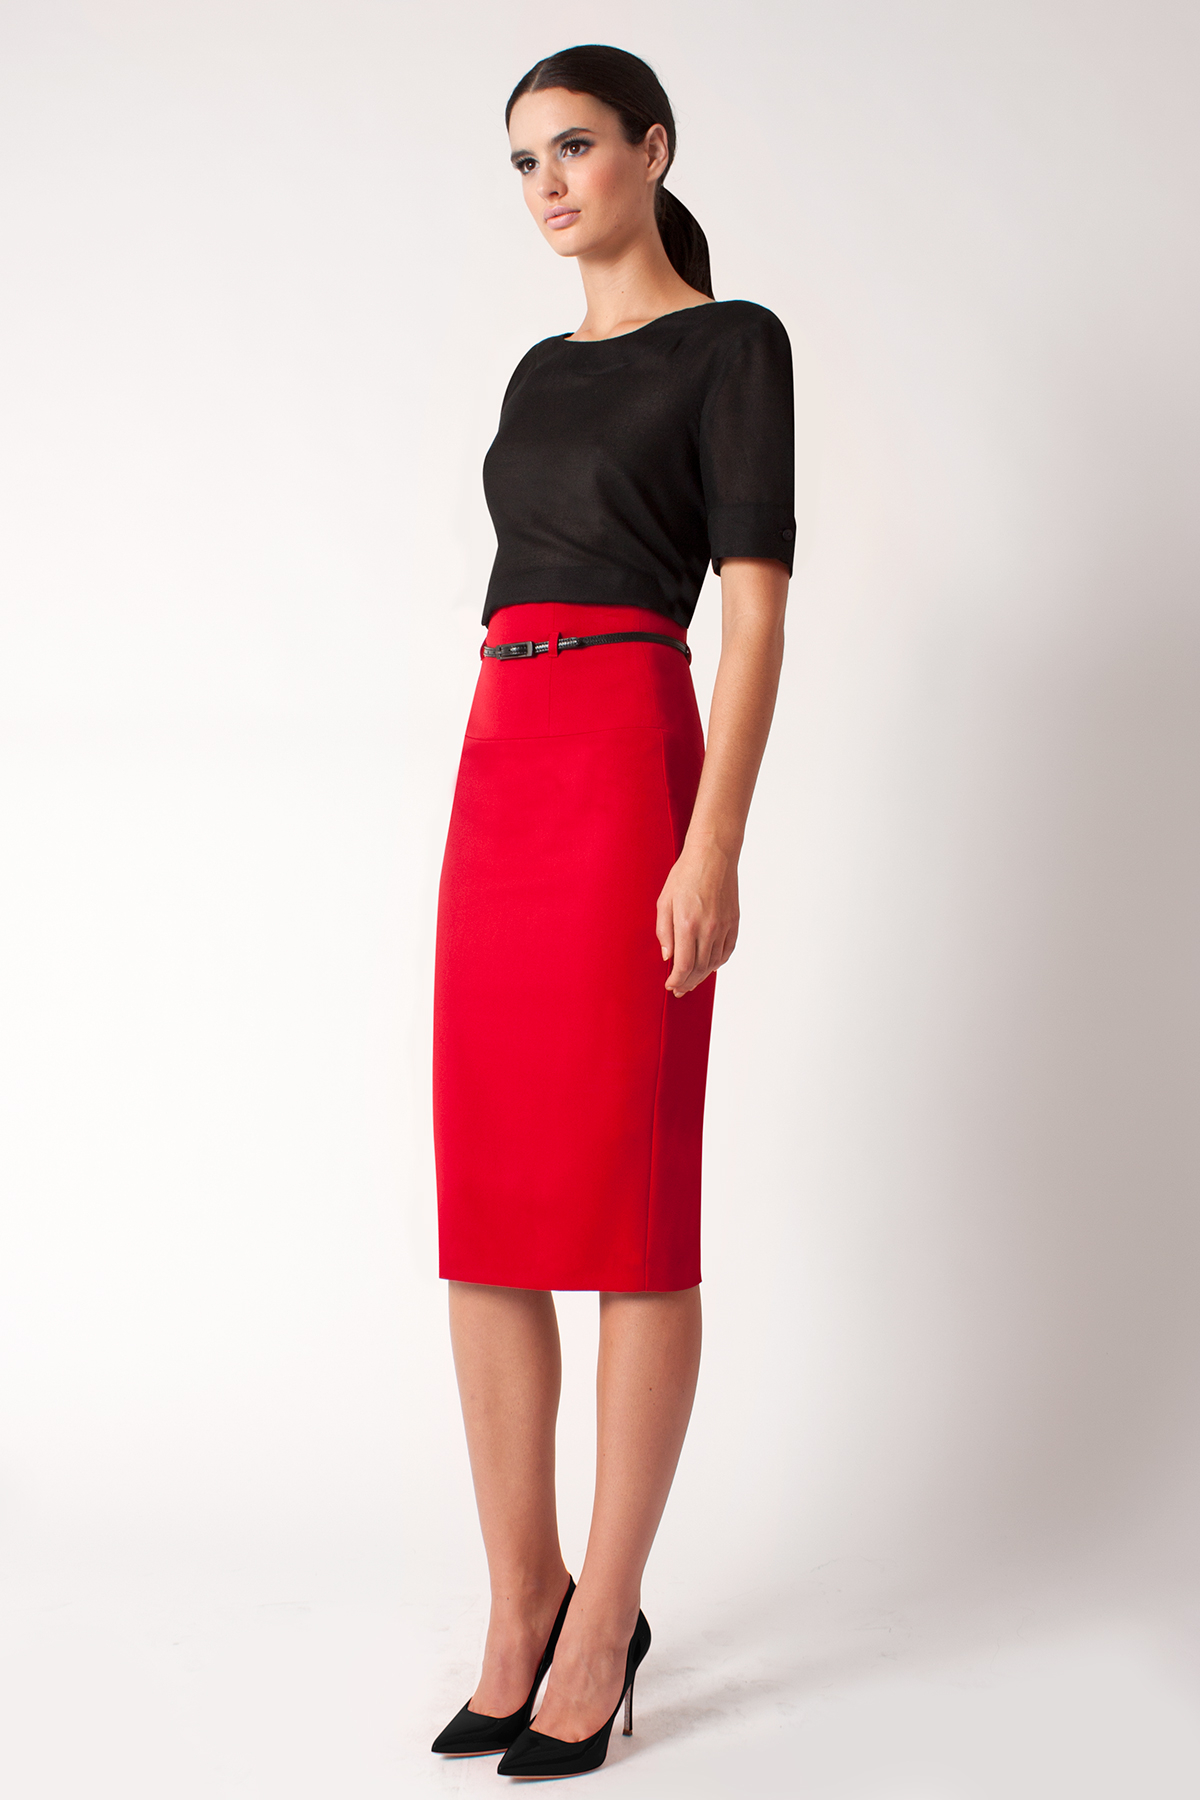 High Waist Skirt. A high-waisted skirt is a fashionable statement to make at the office or for dress and casual wear. Depending on the cut of the skirt, tons of styles can be created with the right top and 0549sahibi.tk is a great way to show off pretty belts, making it a fun piece to accessorize.